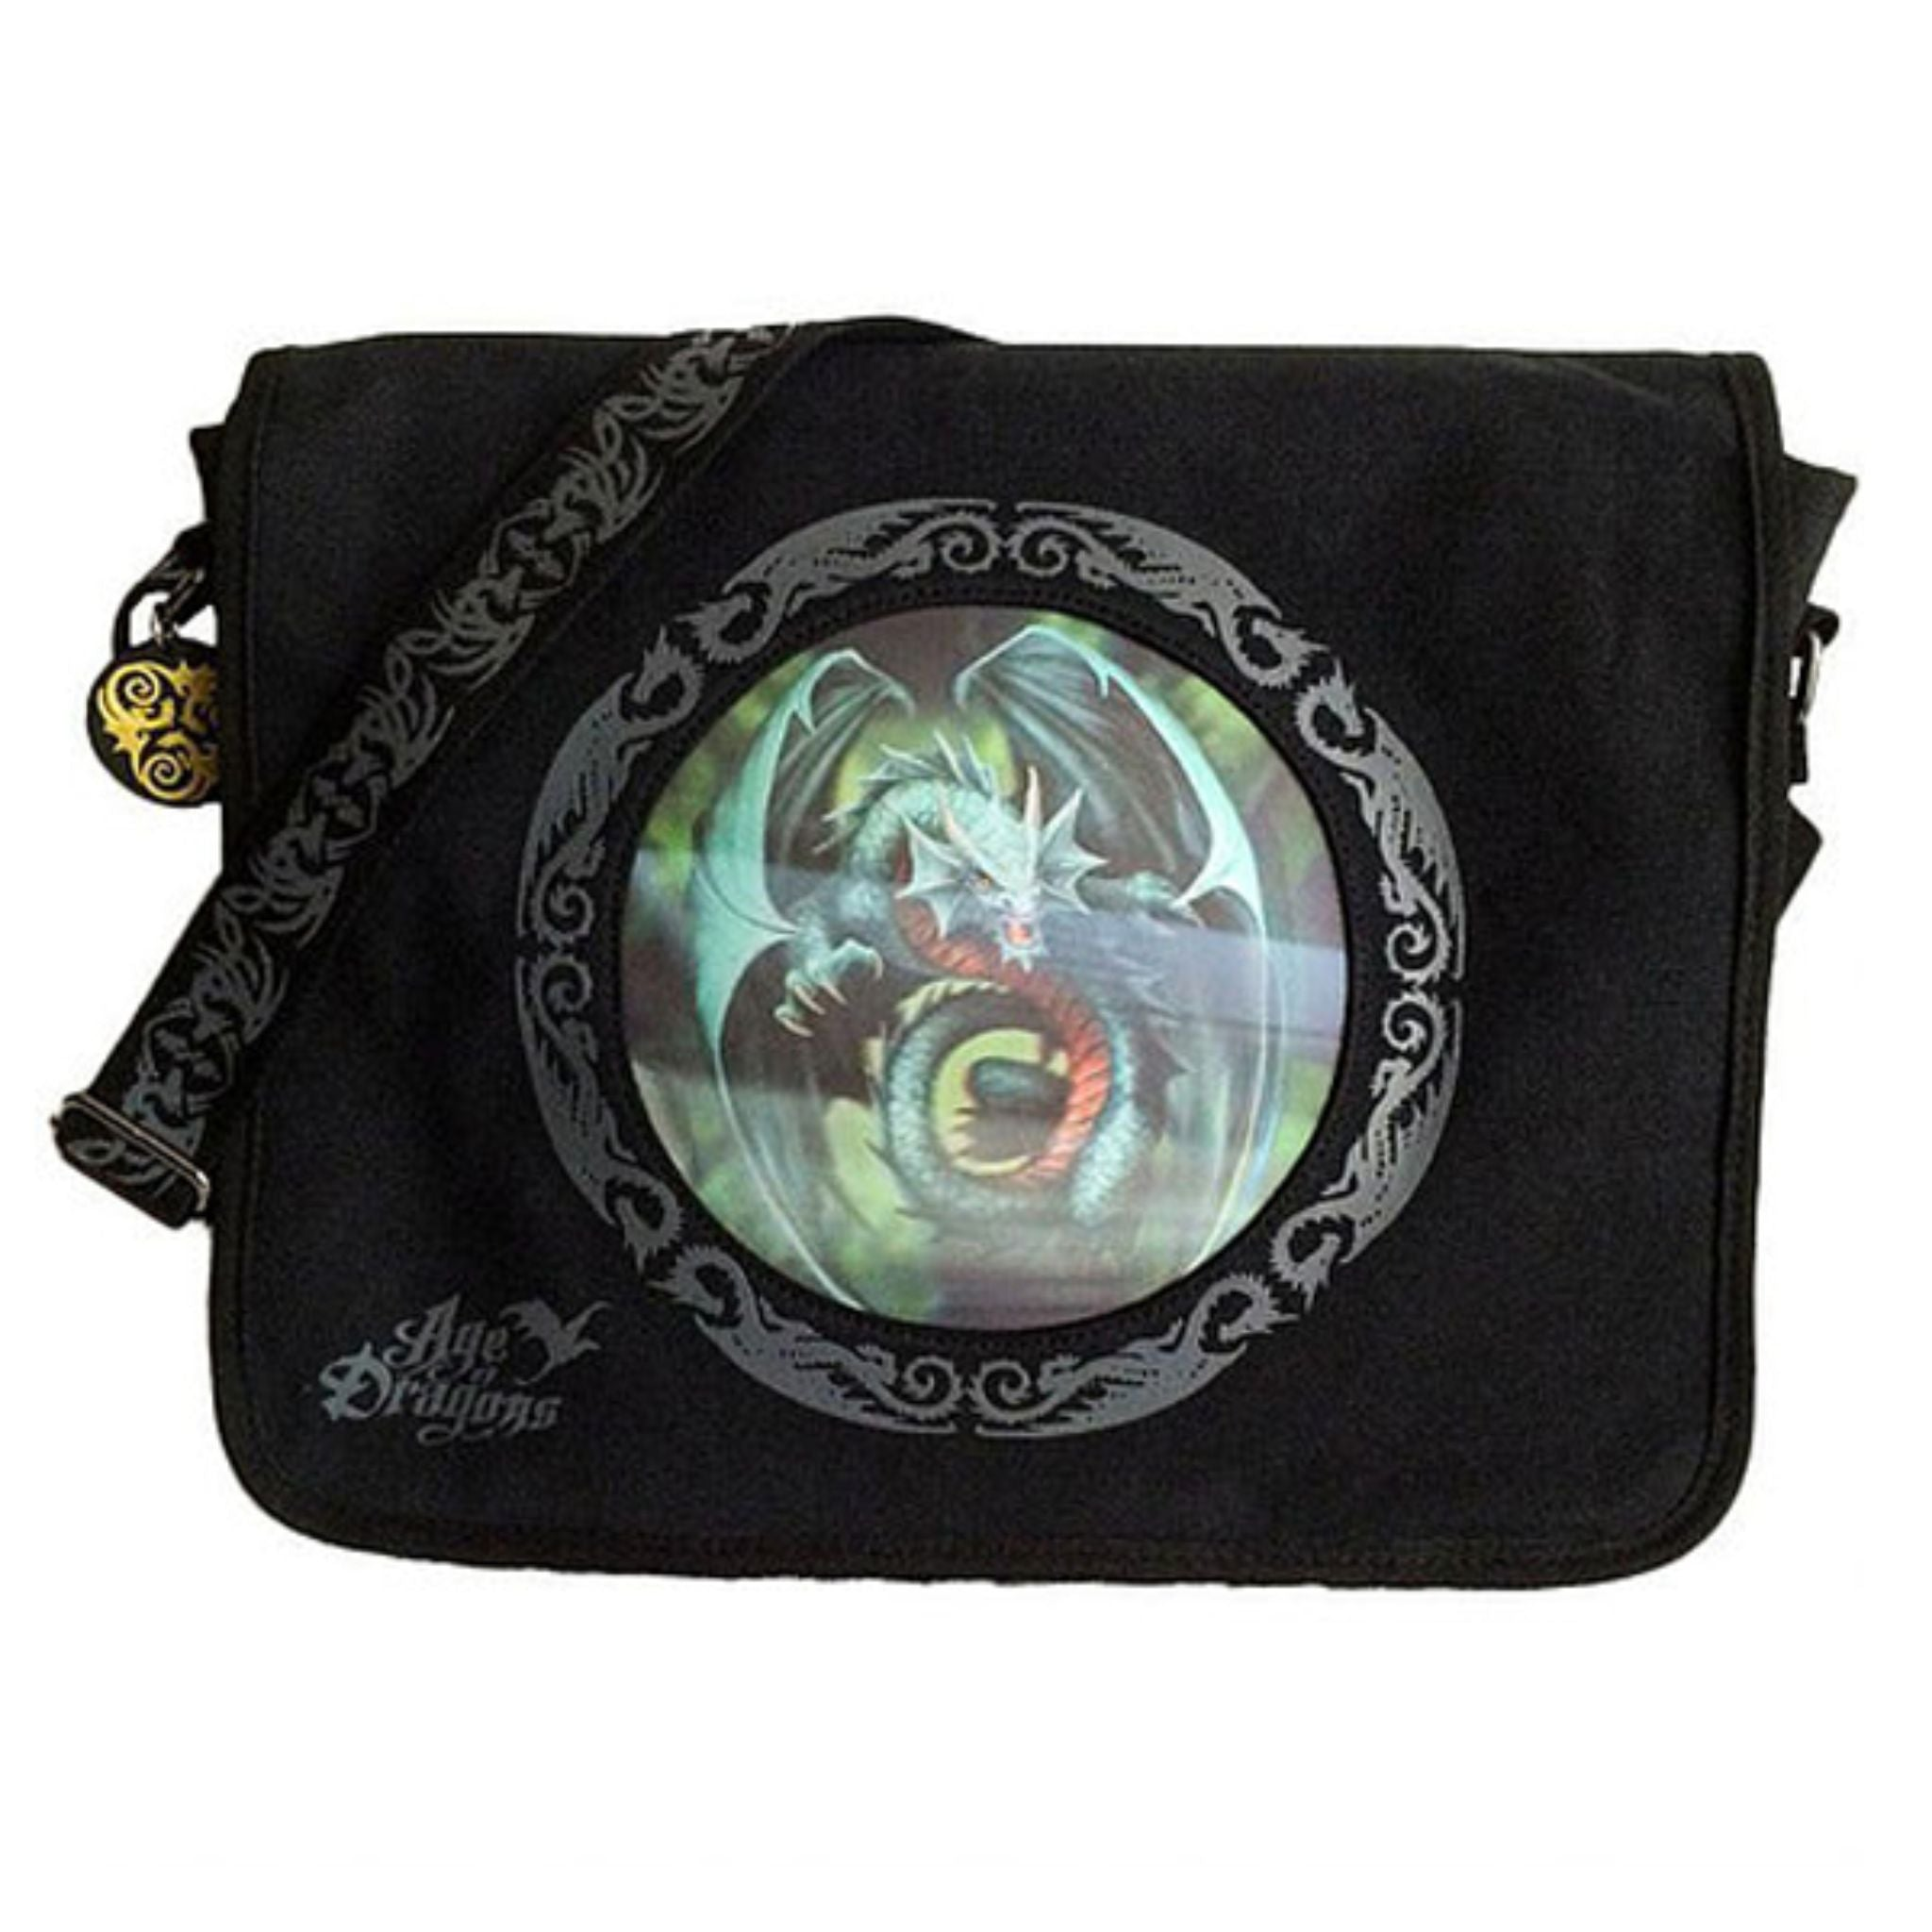 Age of Dragons Messenger Bag